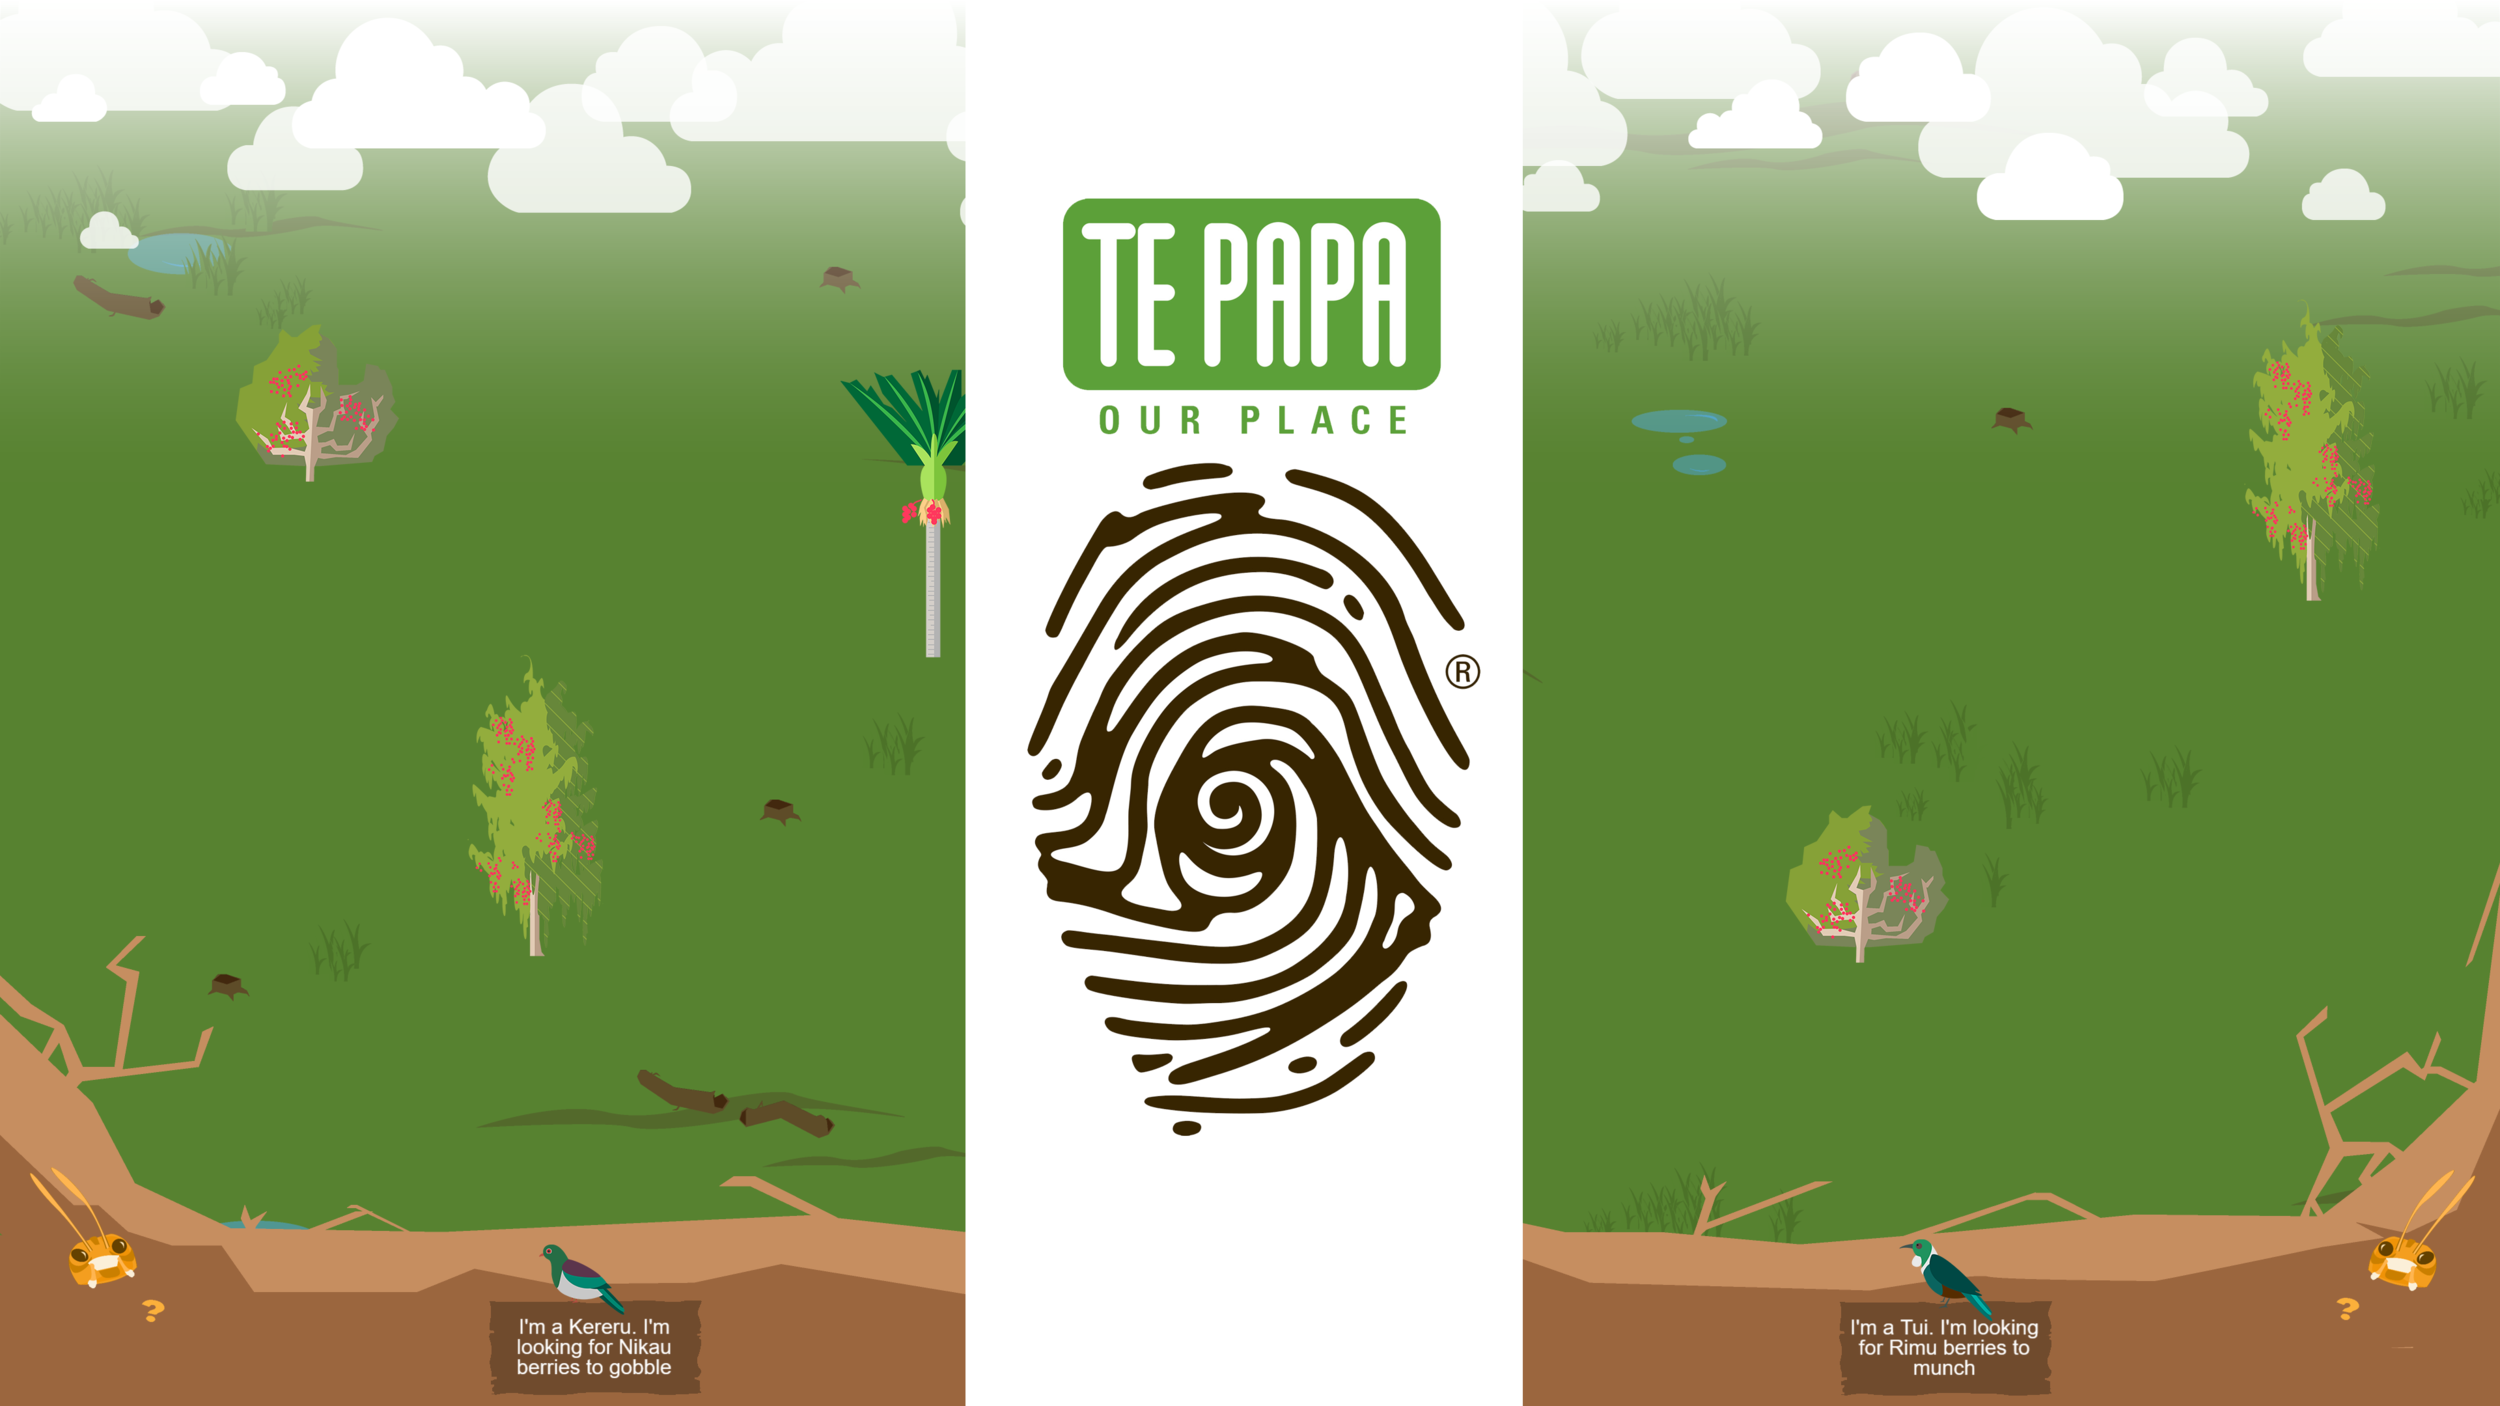 REGROW THE FOREST | TE PAPA